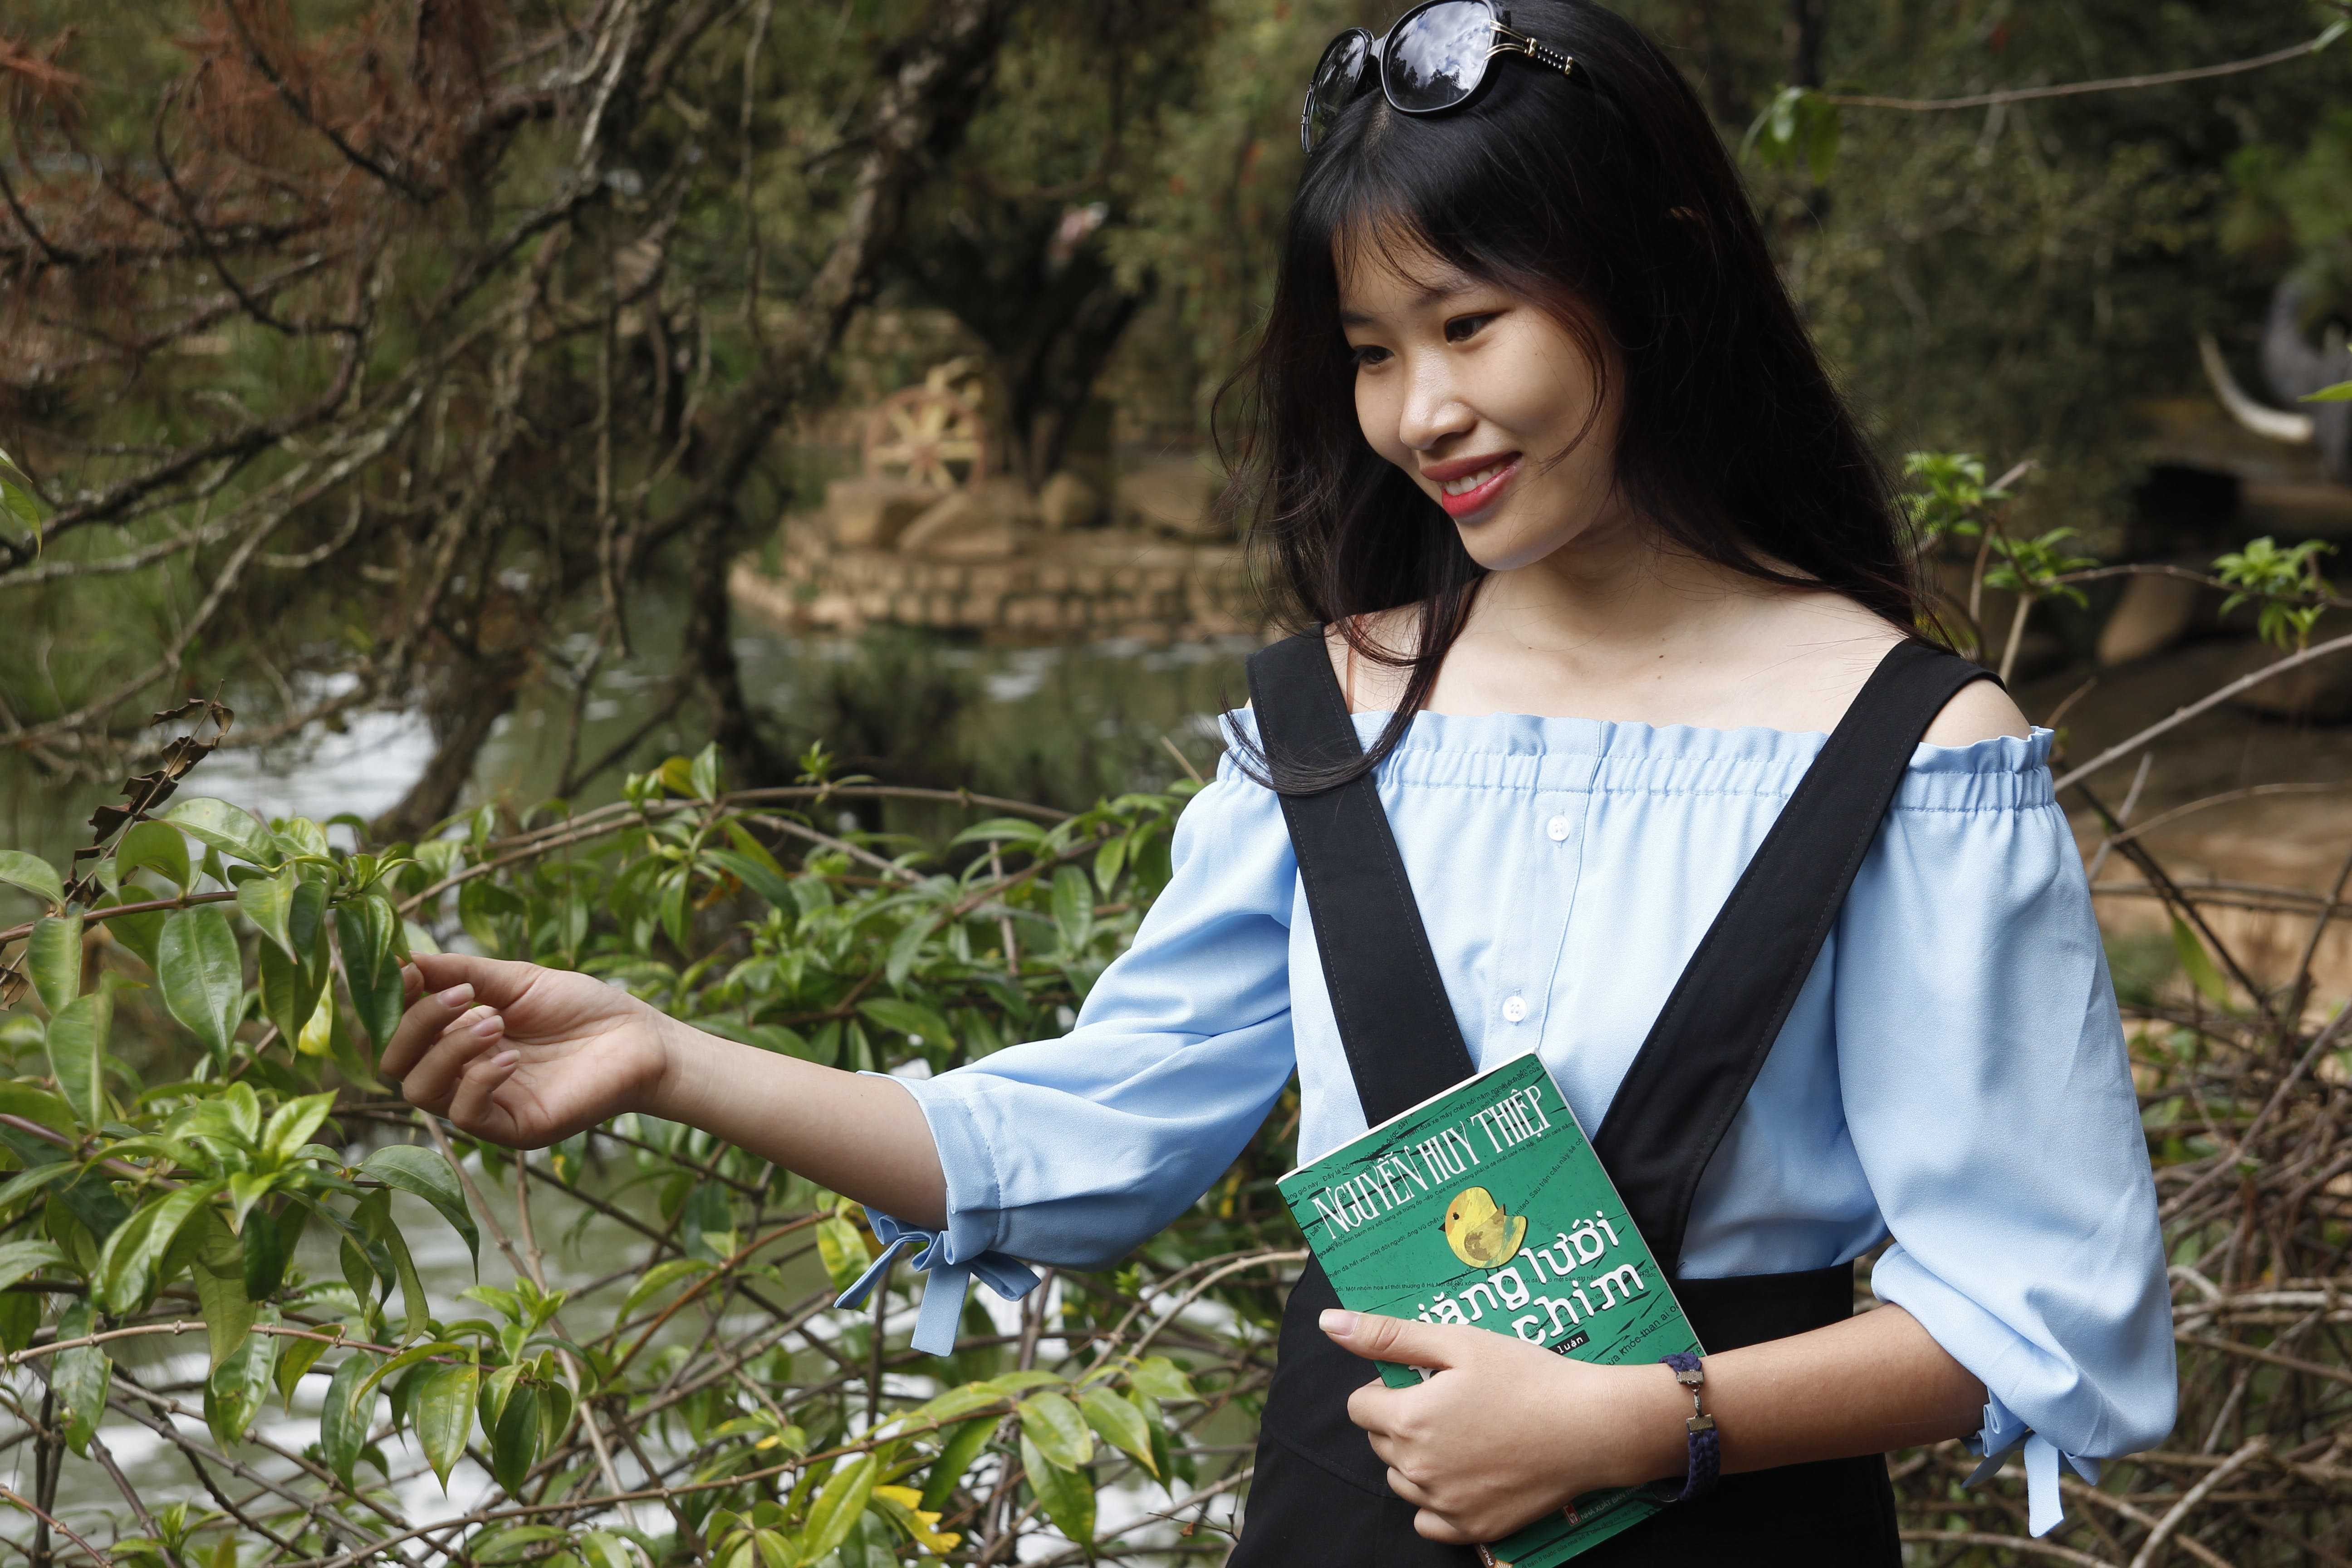 Woman Wearing Blue Off-shoulder Blouse Holding Book Next to Green Leaf Plant